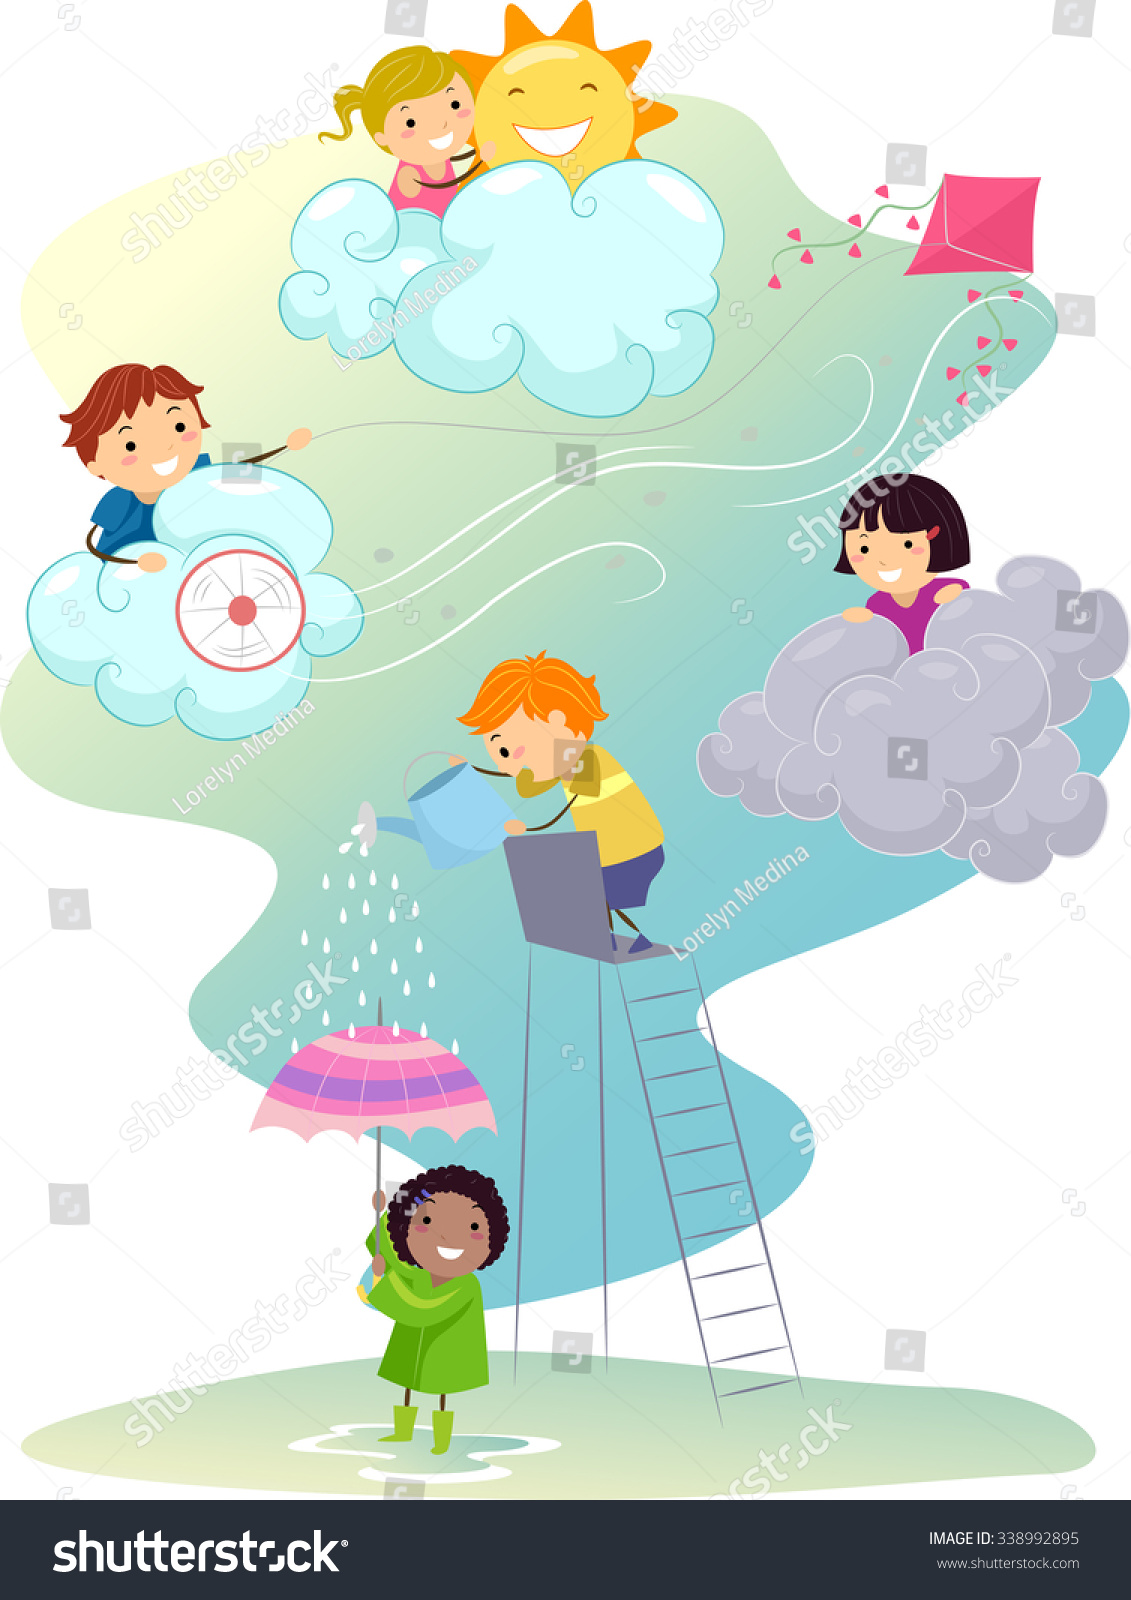 Stickman Illustration Kids Playing Different Weather Stock Vector ...